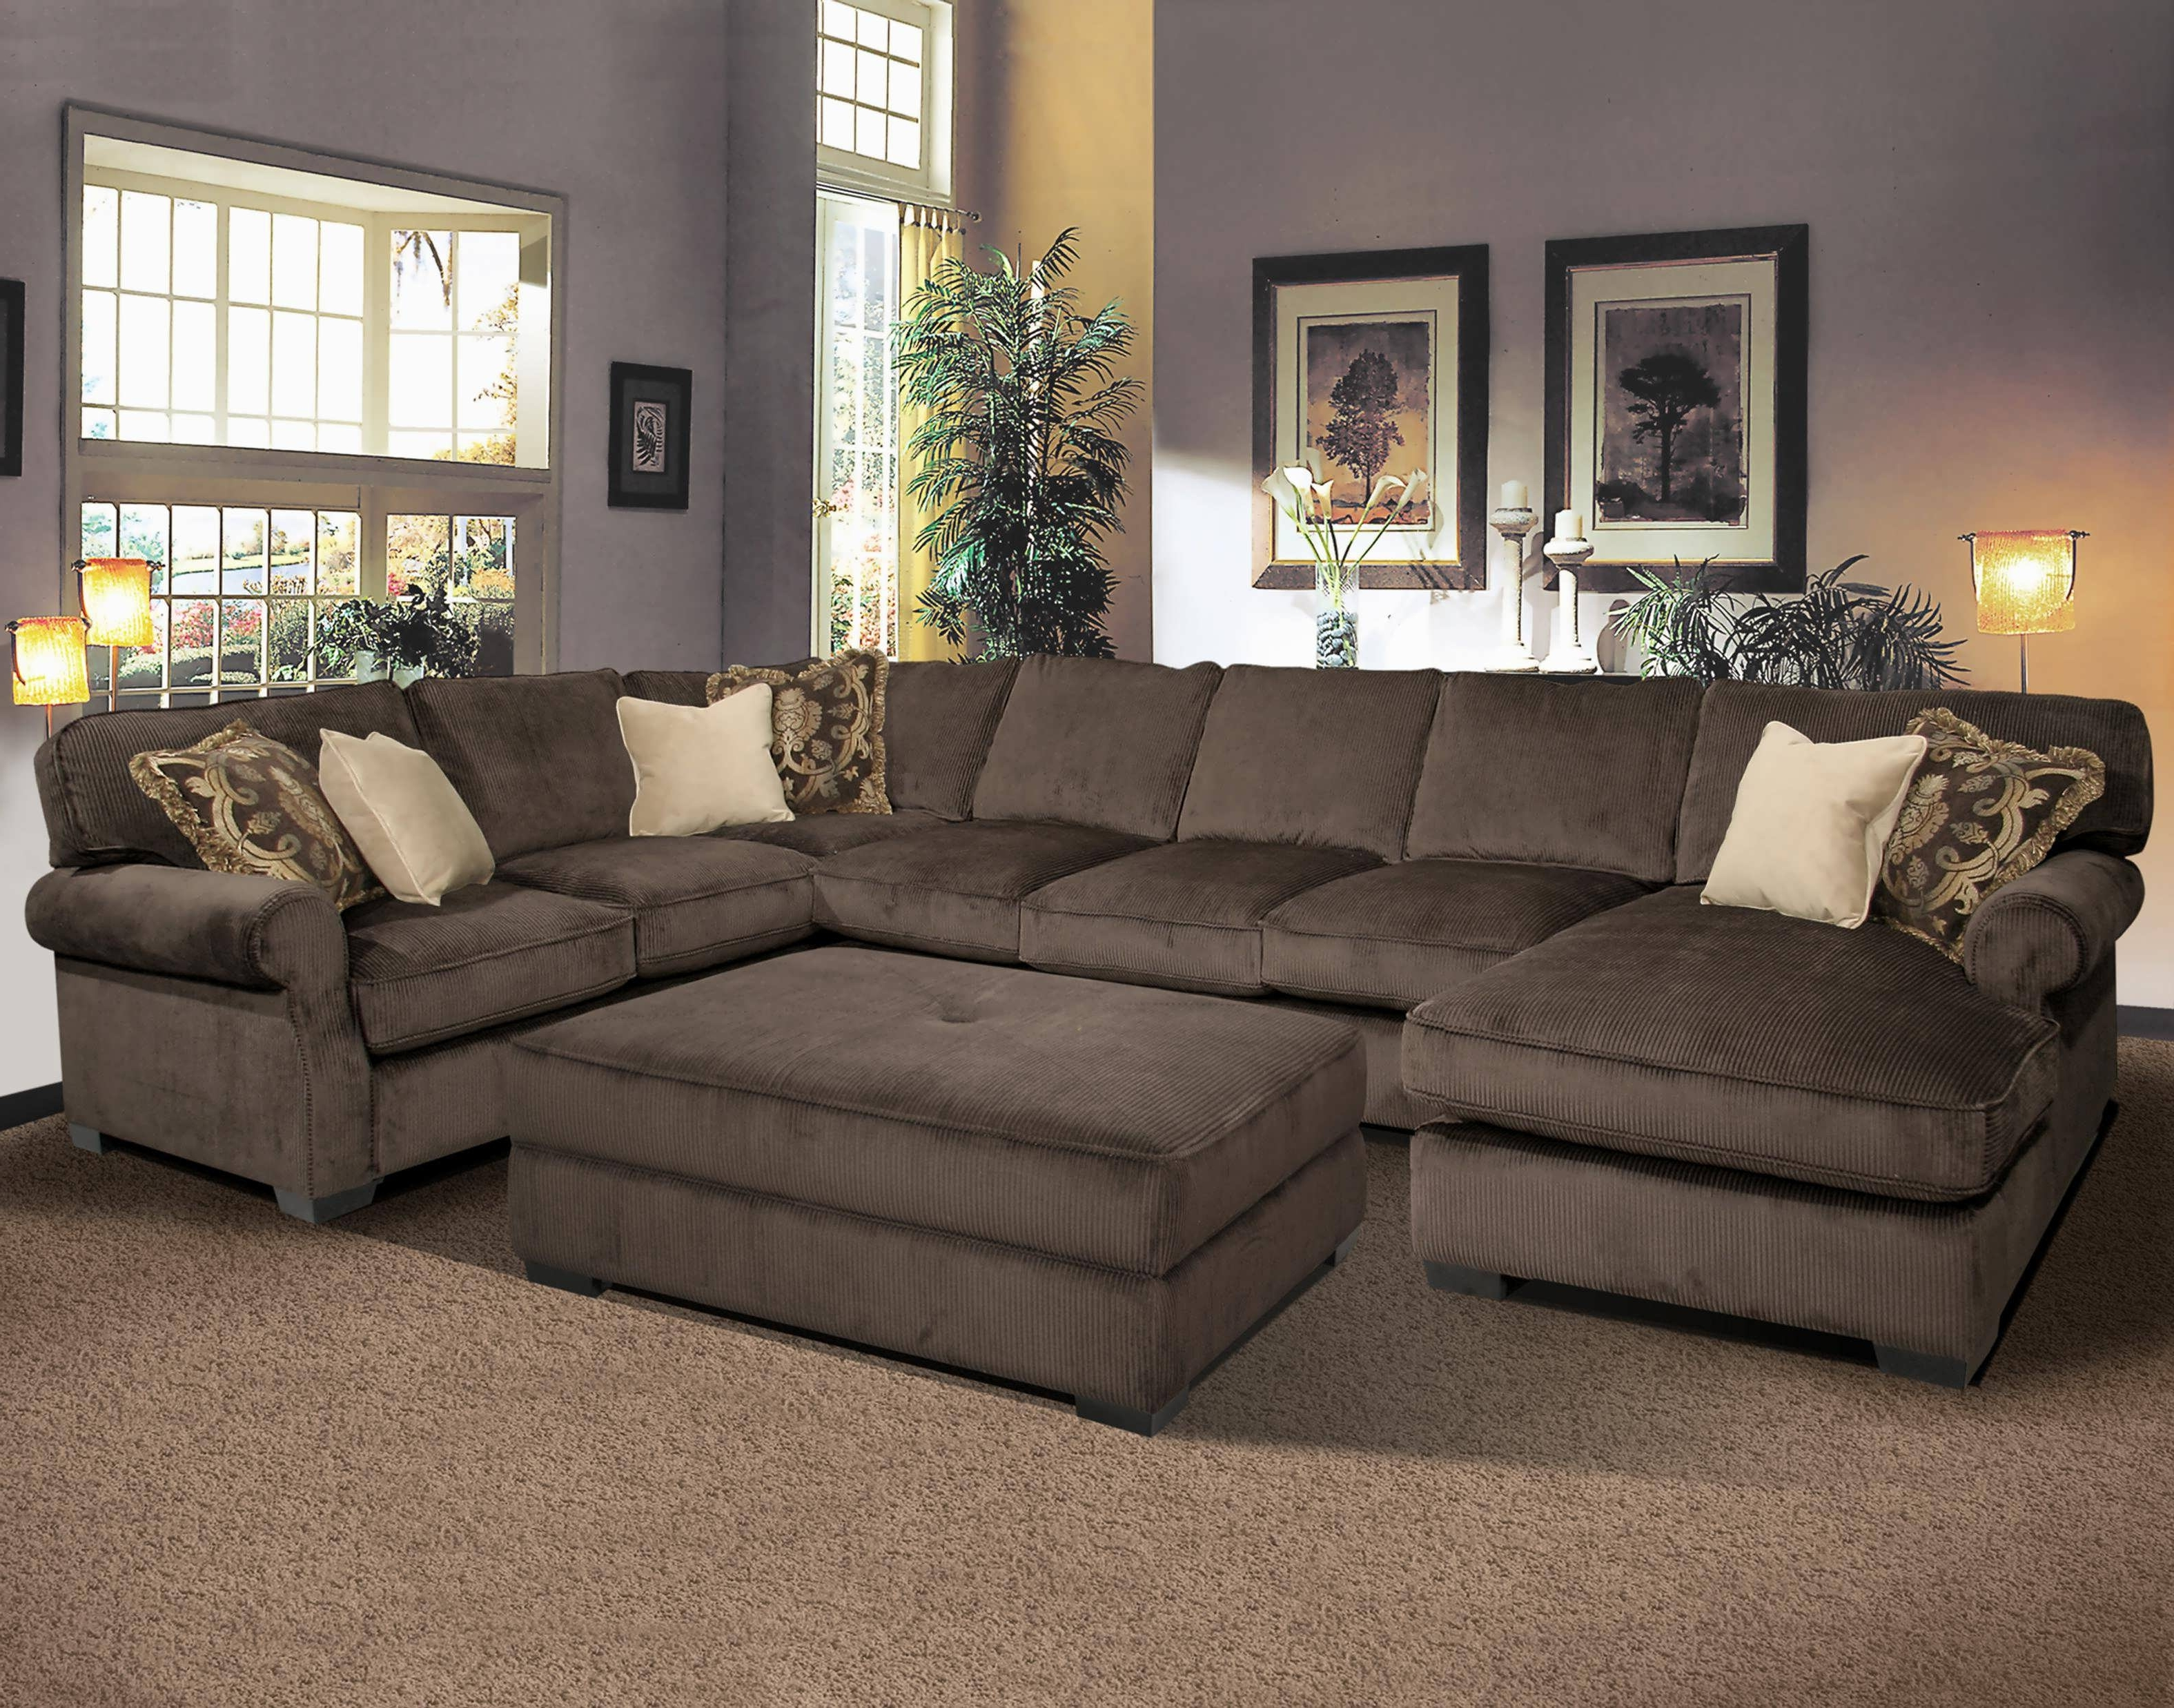 Sofa : Sofas And Sectionals Leather Sectional Sofa With Chaise With Fashionable Chaise Sectionals (View 14 of 15)